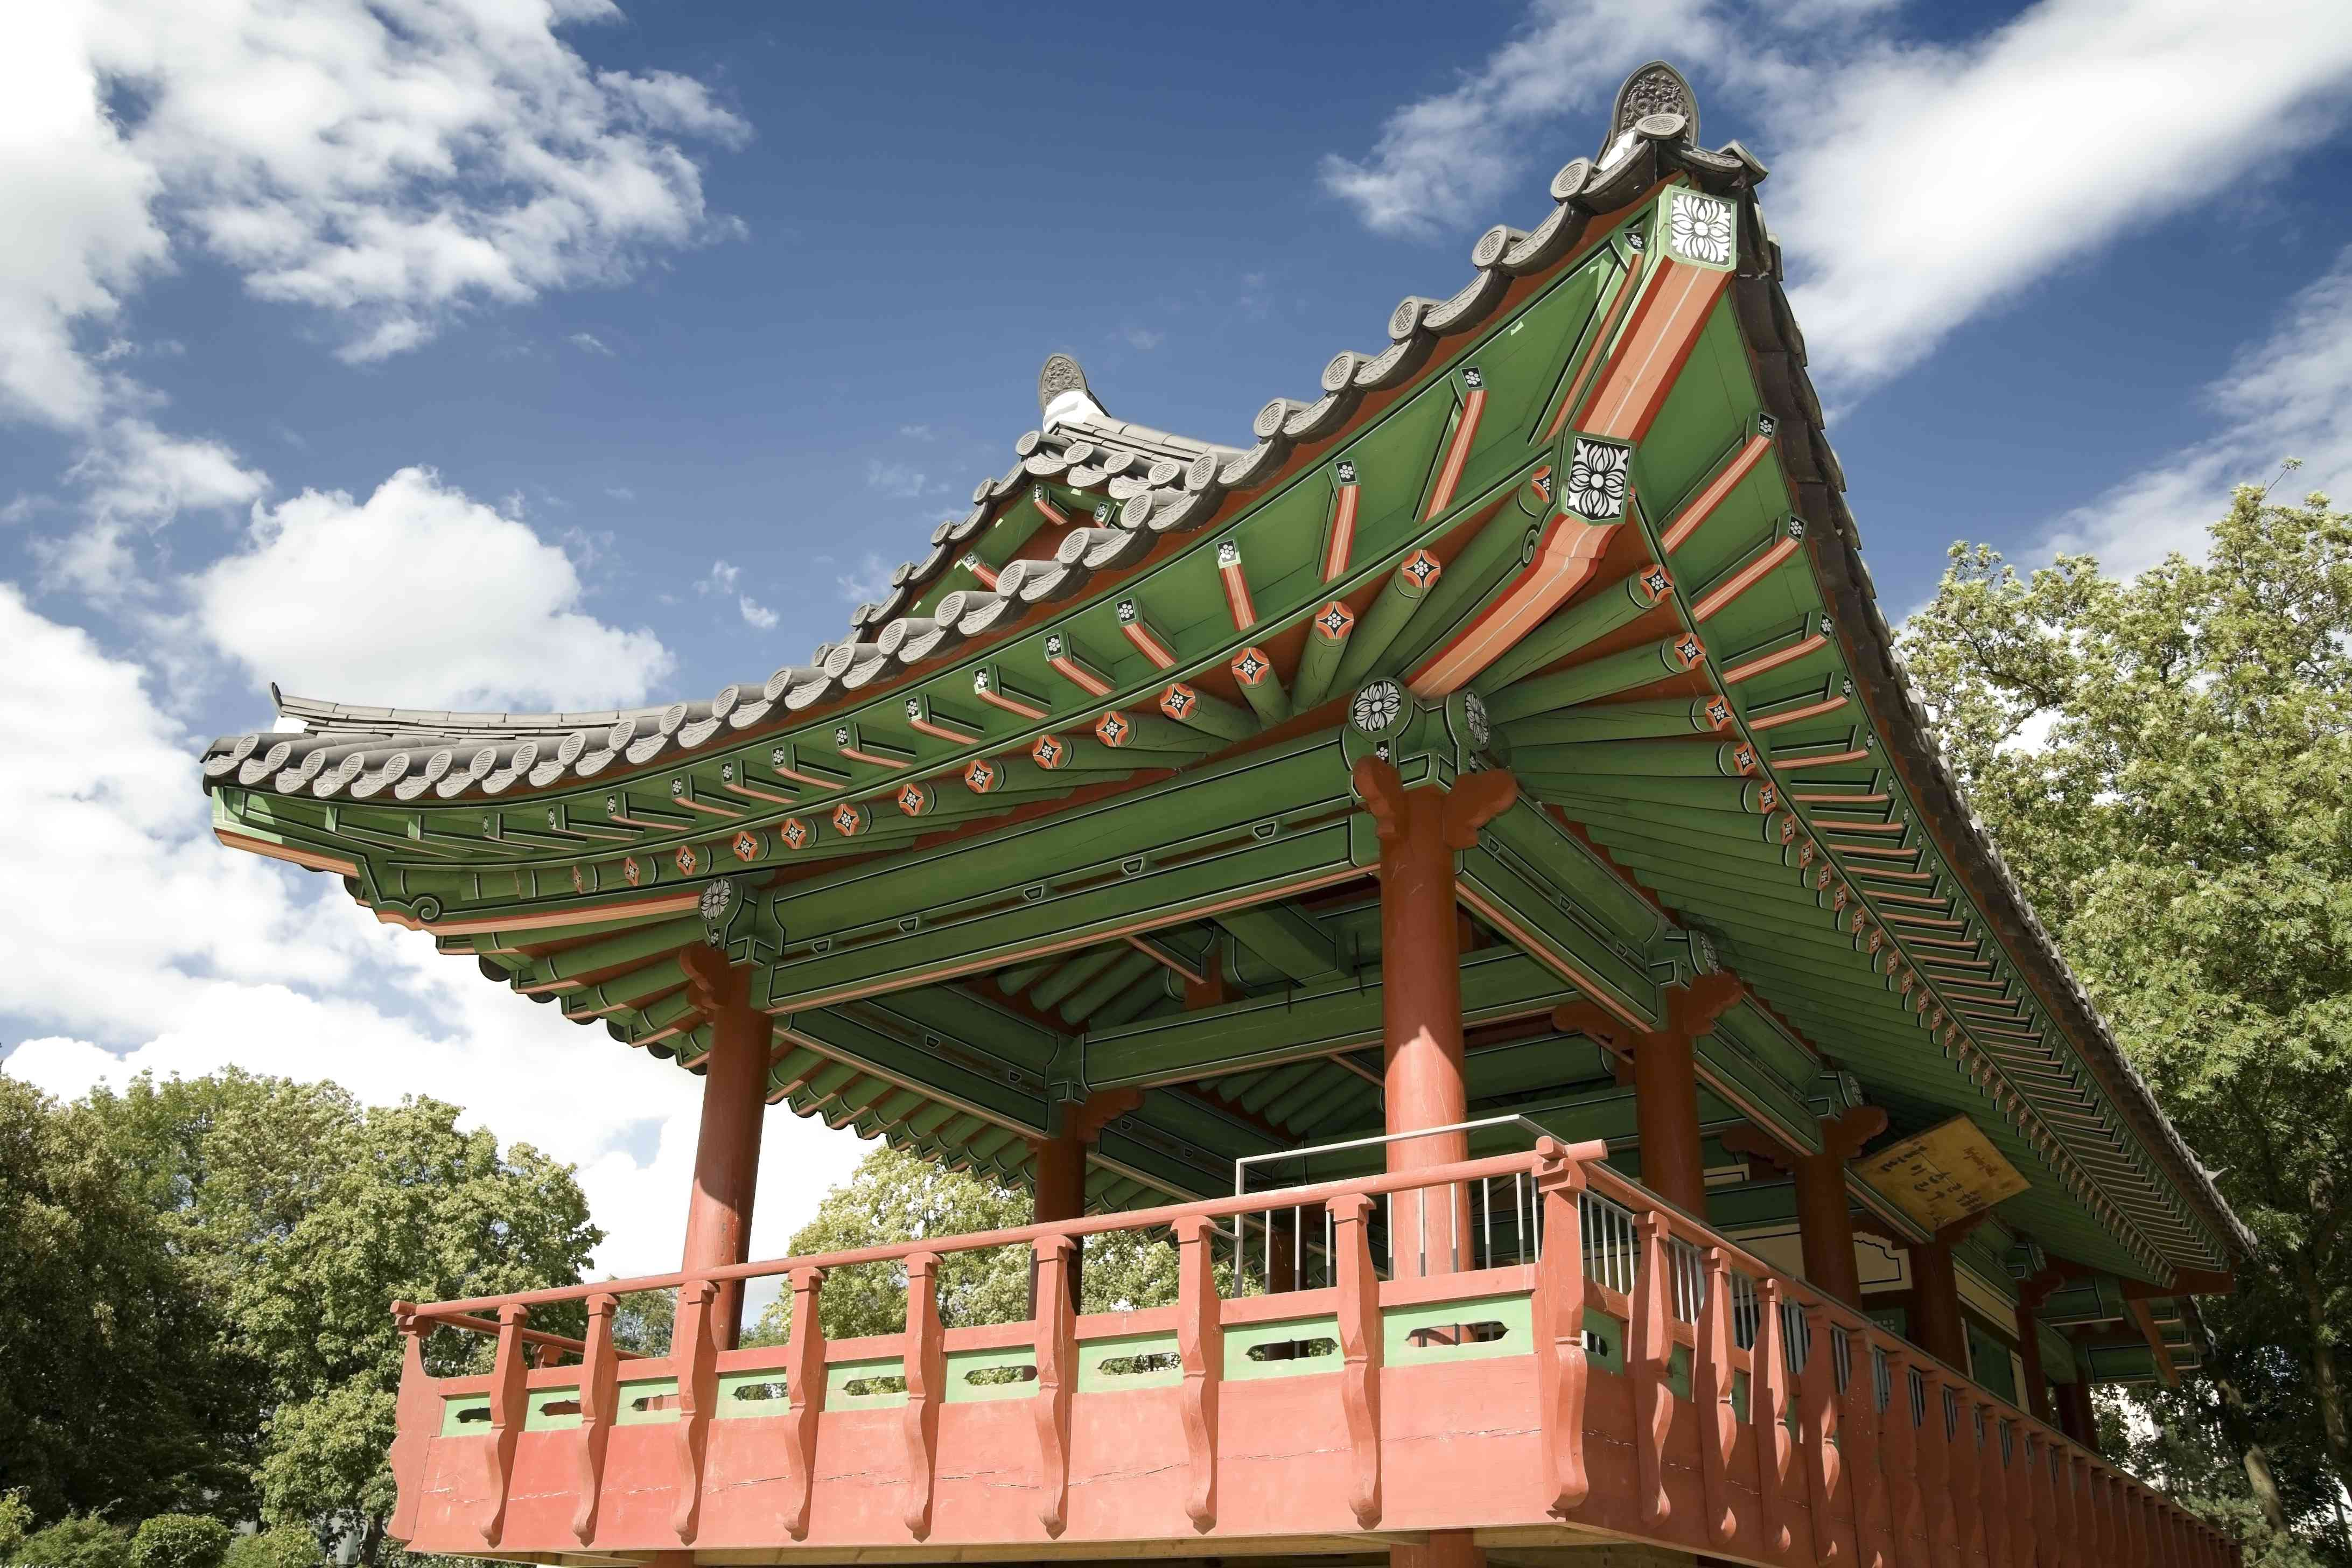 low angle view of a Korean pagoda with terracotta and green details